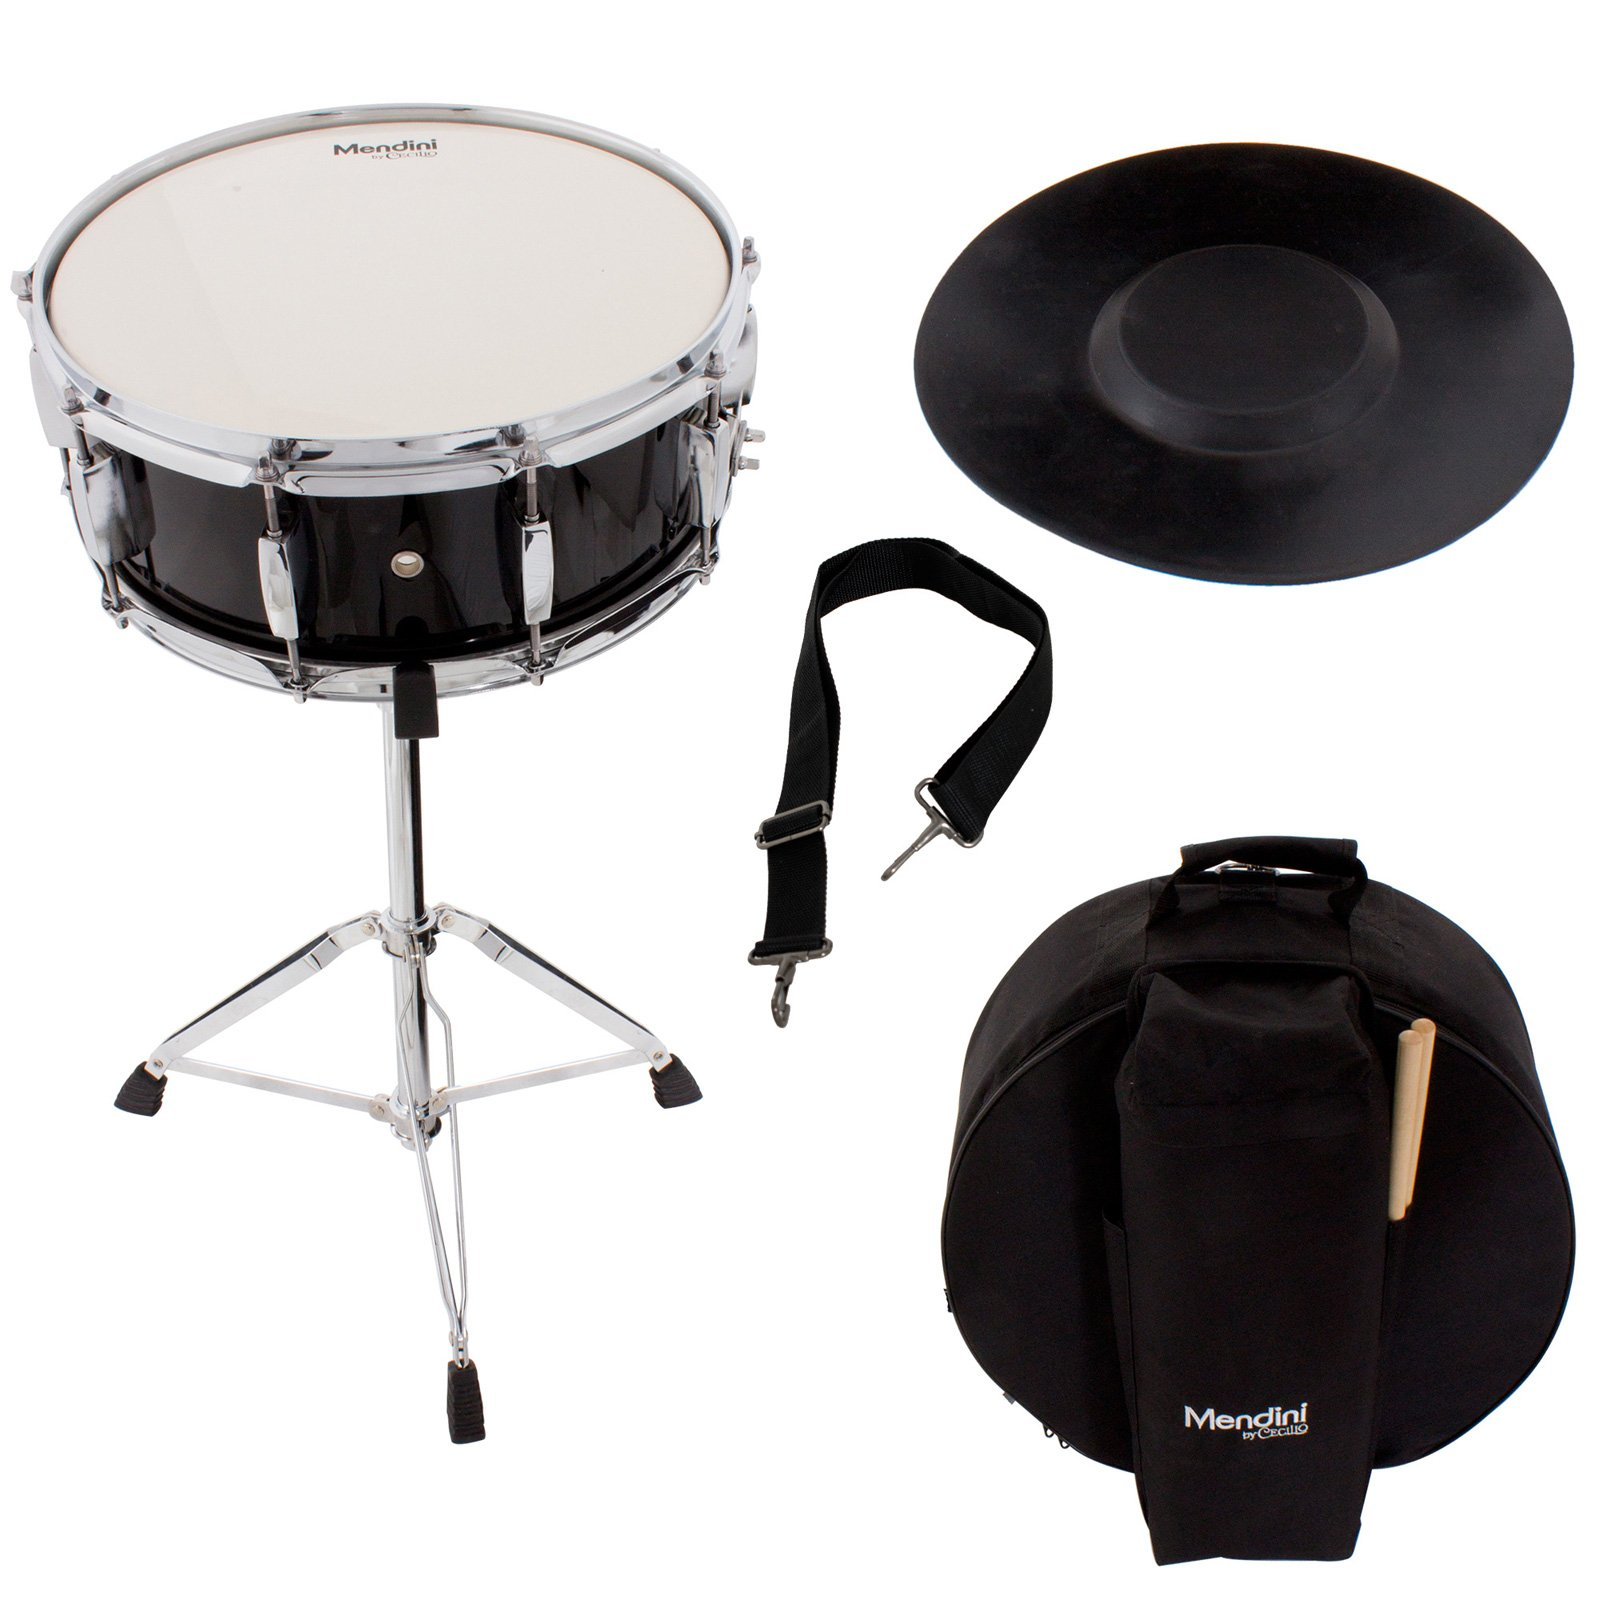 Mendini Student Snare Drum Set with Gig Bag, Sticks, Stand and Practice Pad Kit, Black, MSN-1455P-BK by Mendini by Cecilio